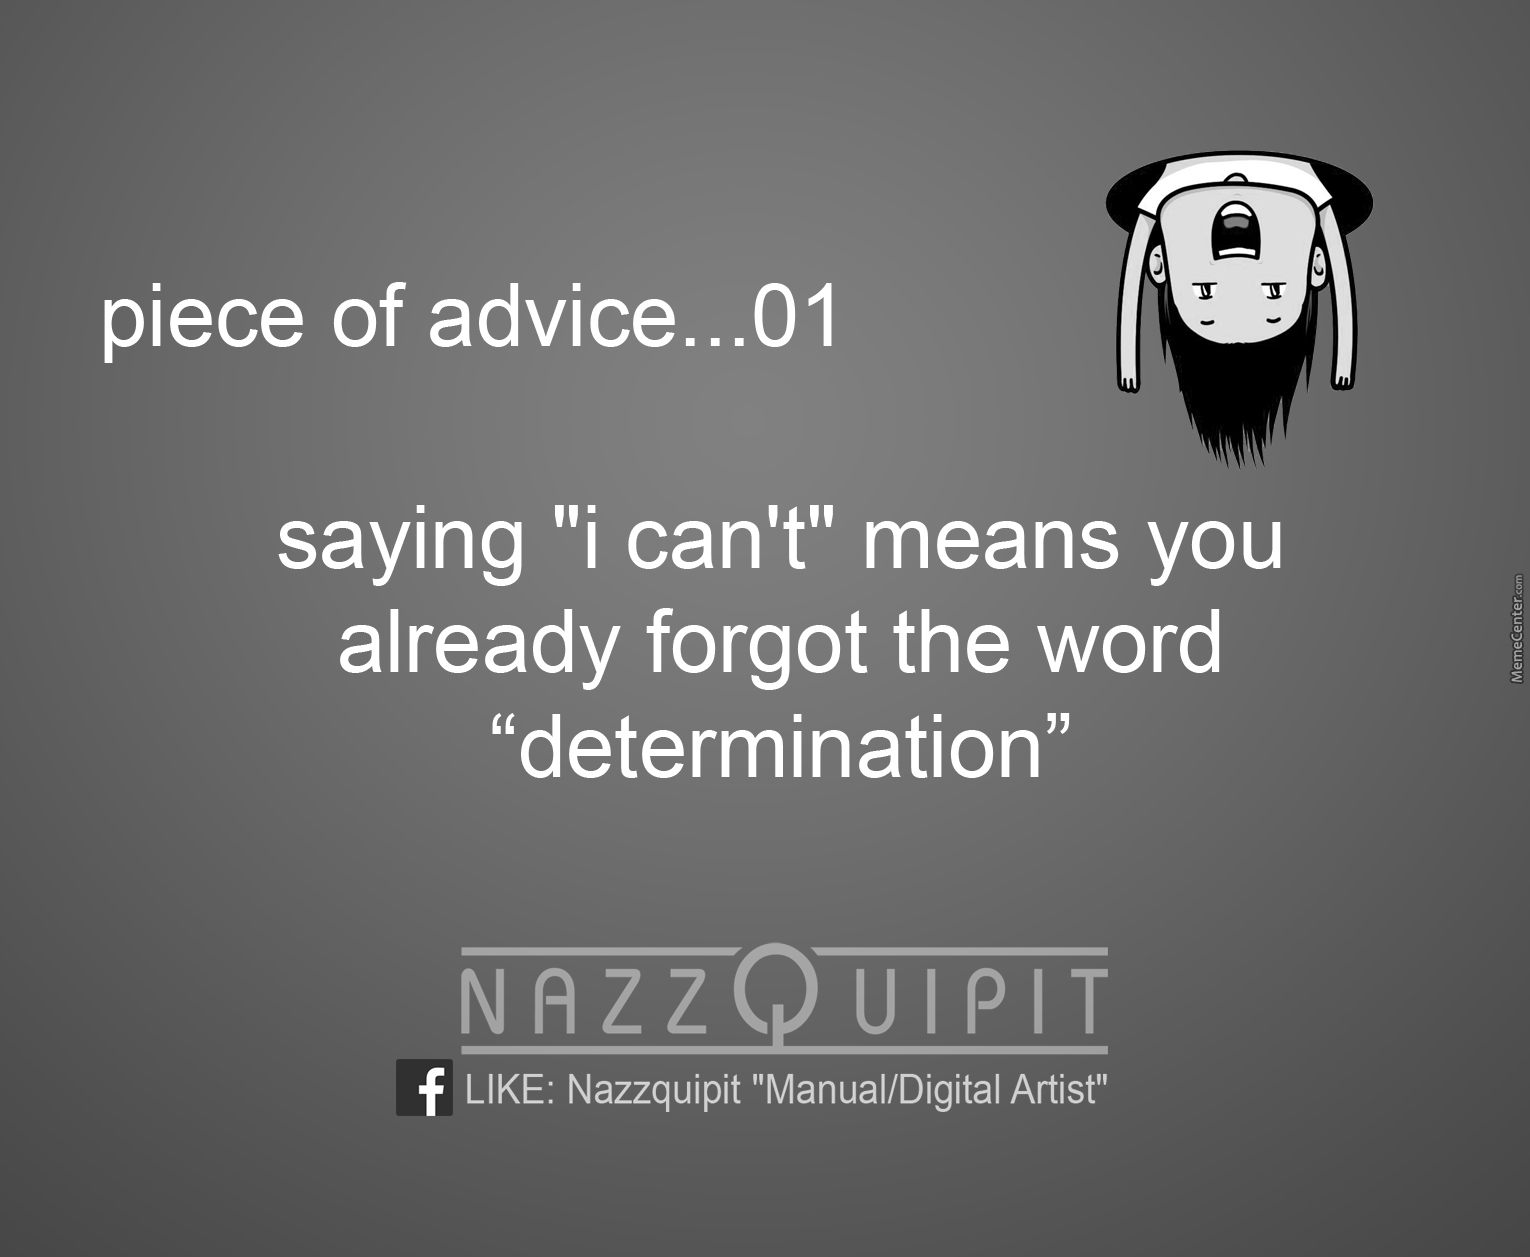 Piece Of Advice...01